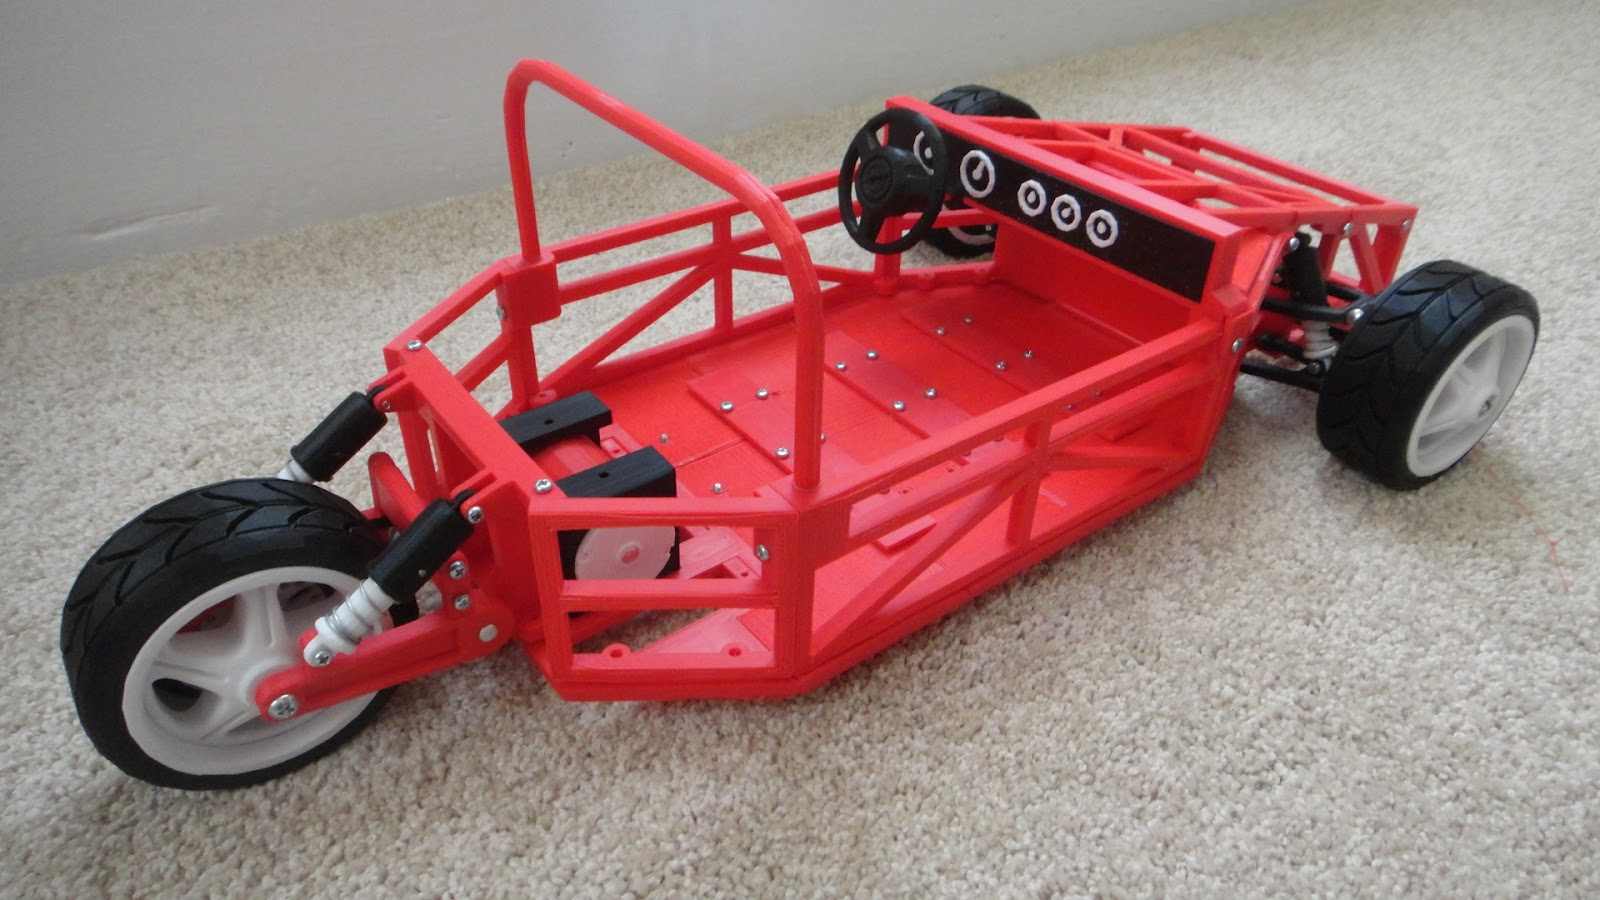 The Tinkers Workshop: 1/6th Scale Makerbot Electric Car Model Is Rolling